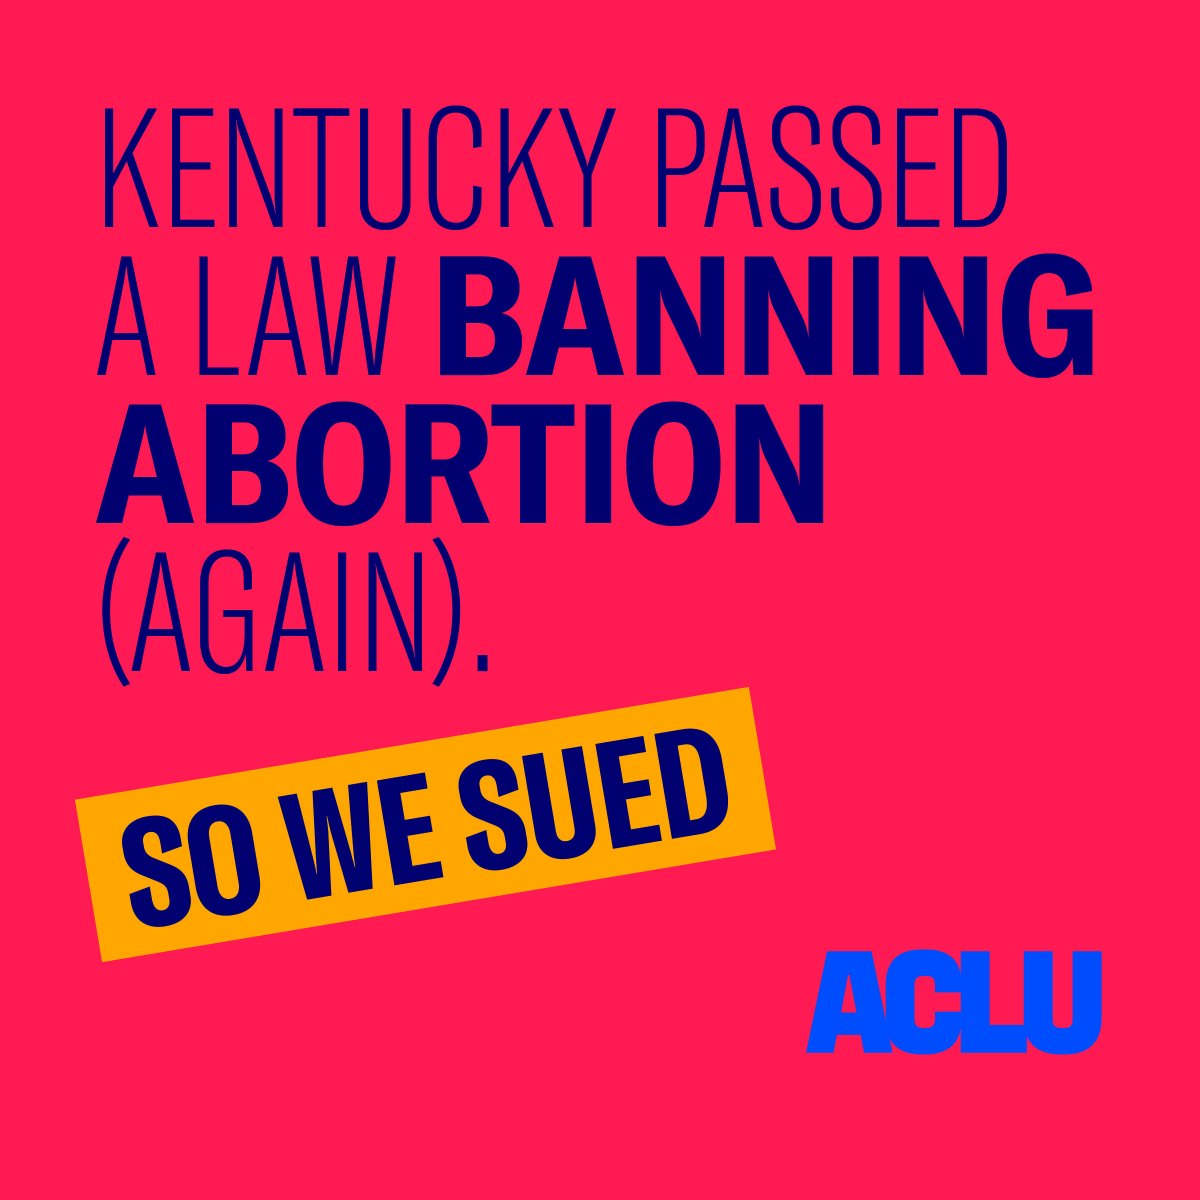 BREAKING: We've just filed a lawsuit to block the implementation of House Bill 5, which bans abortion if the reason is for the race, sex, national origin, color, or disability status of the fetus https://www.aclu-ky.org/sites/default/files/field_documents/hb5_ban_complaint_filed.pdf … #HB5 #kyga19